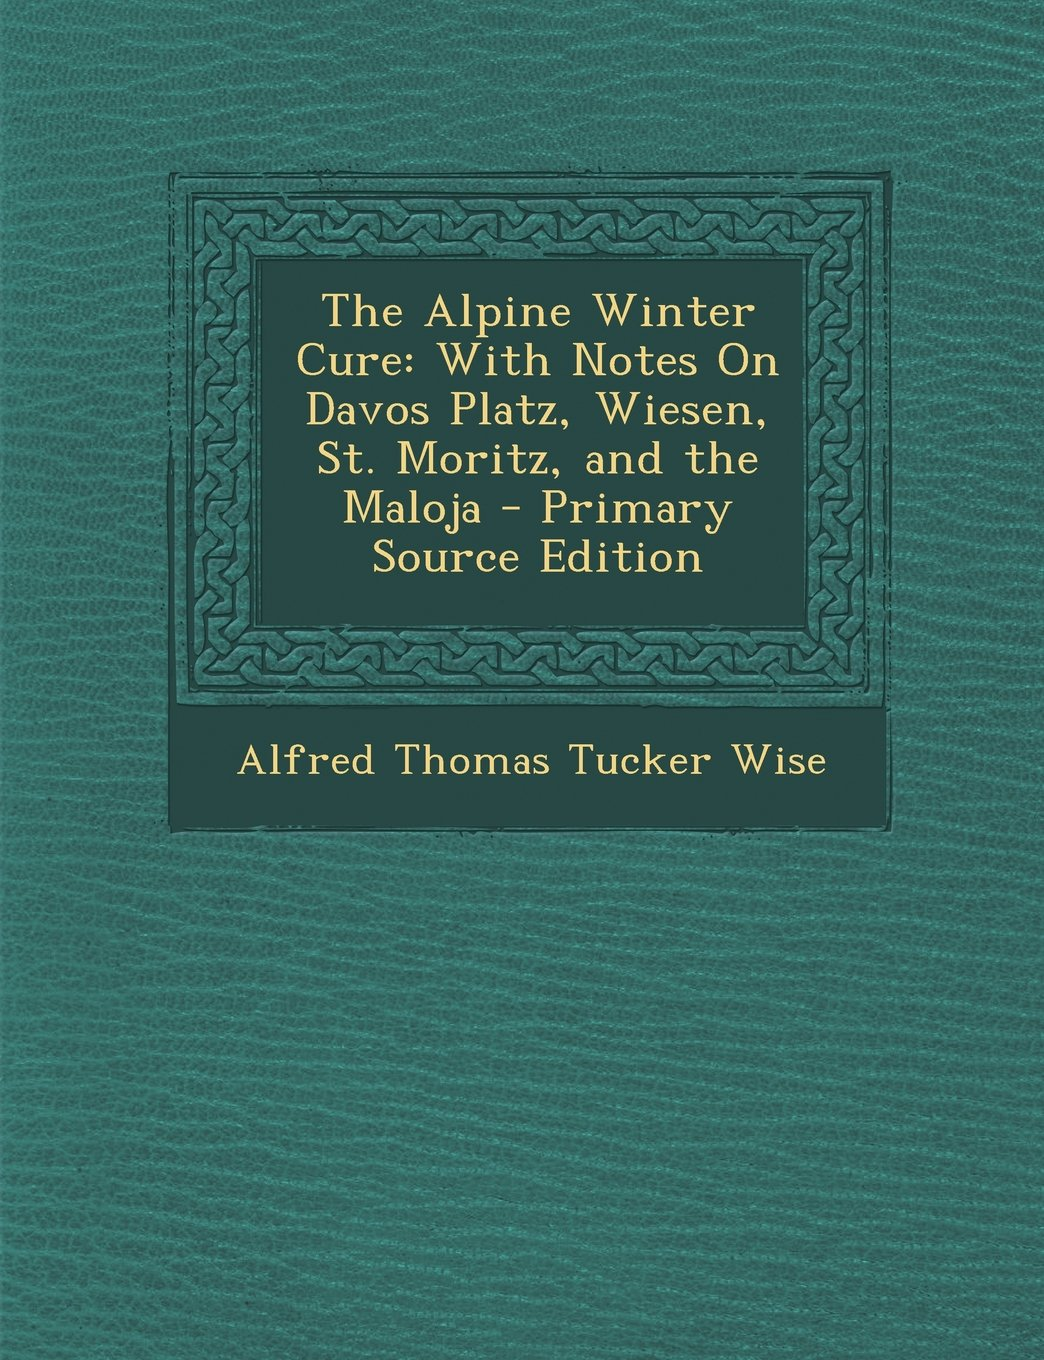 The Alpine Winter Cure: With Notes on Davos Platz, Wiesen, St. Moritz, and the Maloja - Primary Source Edition PDF